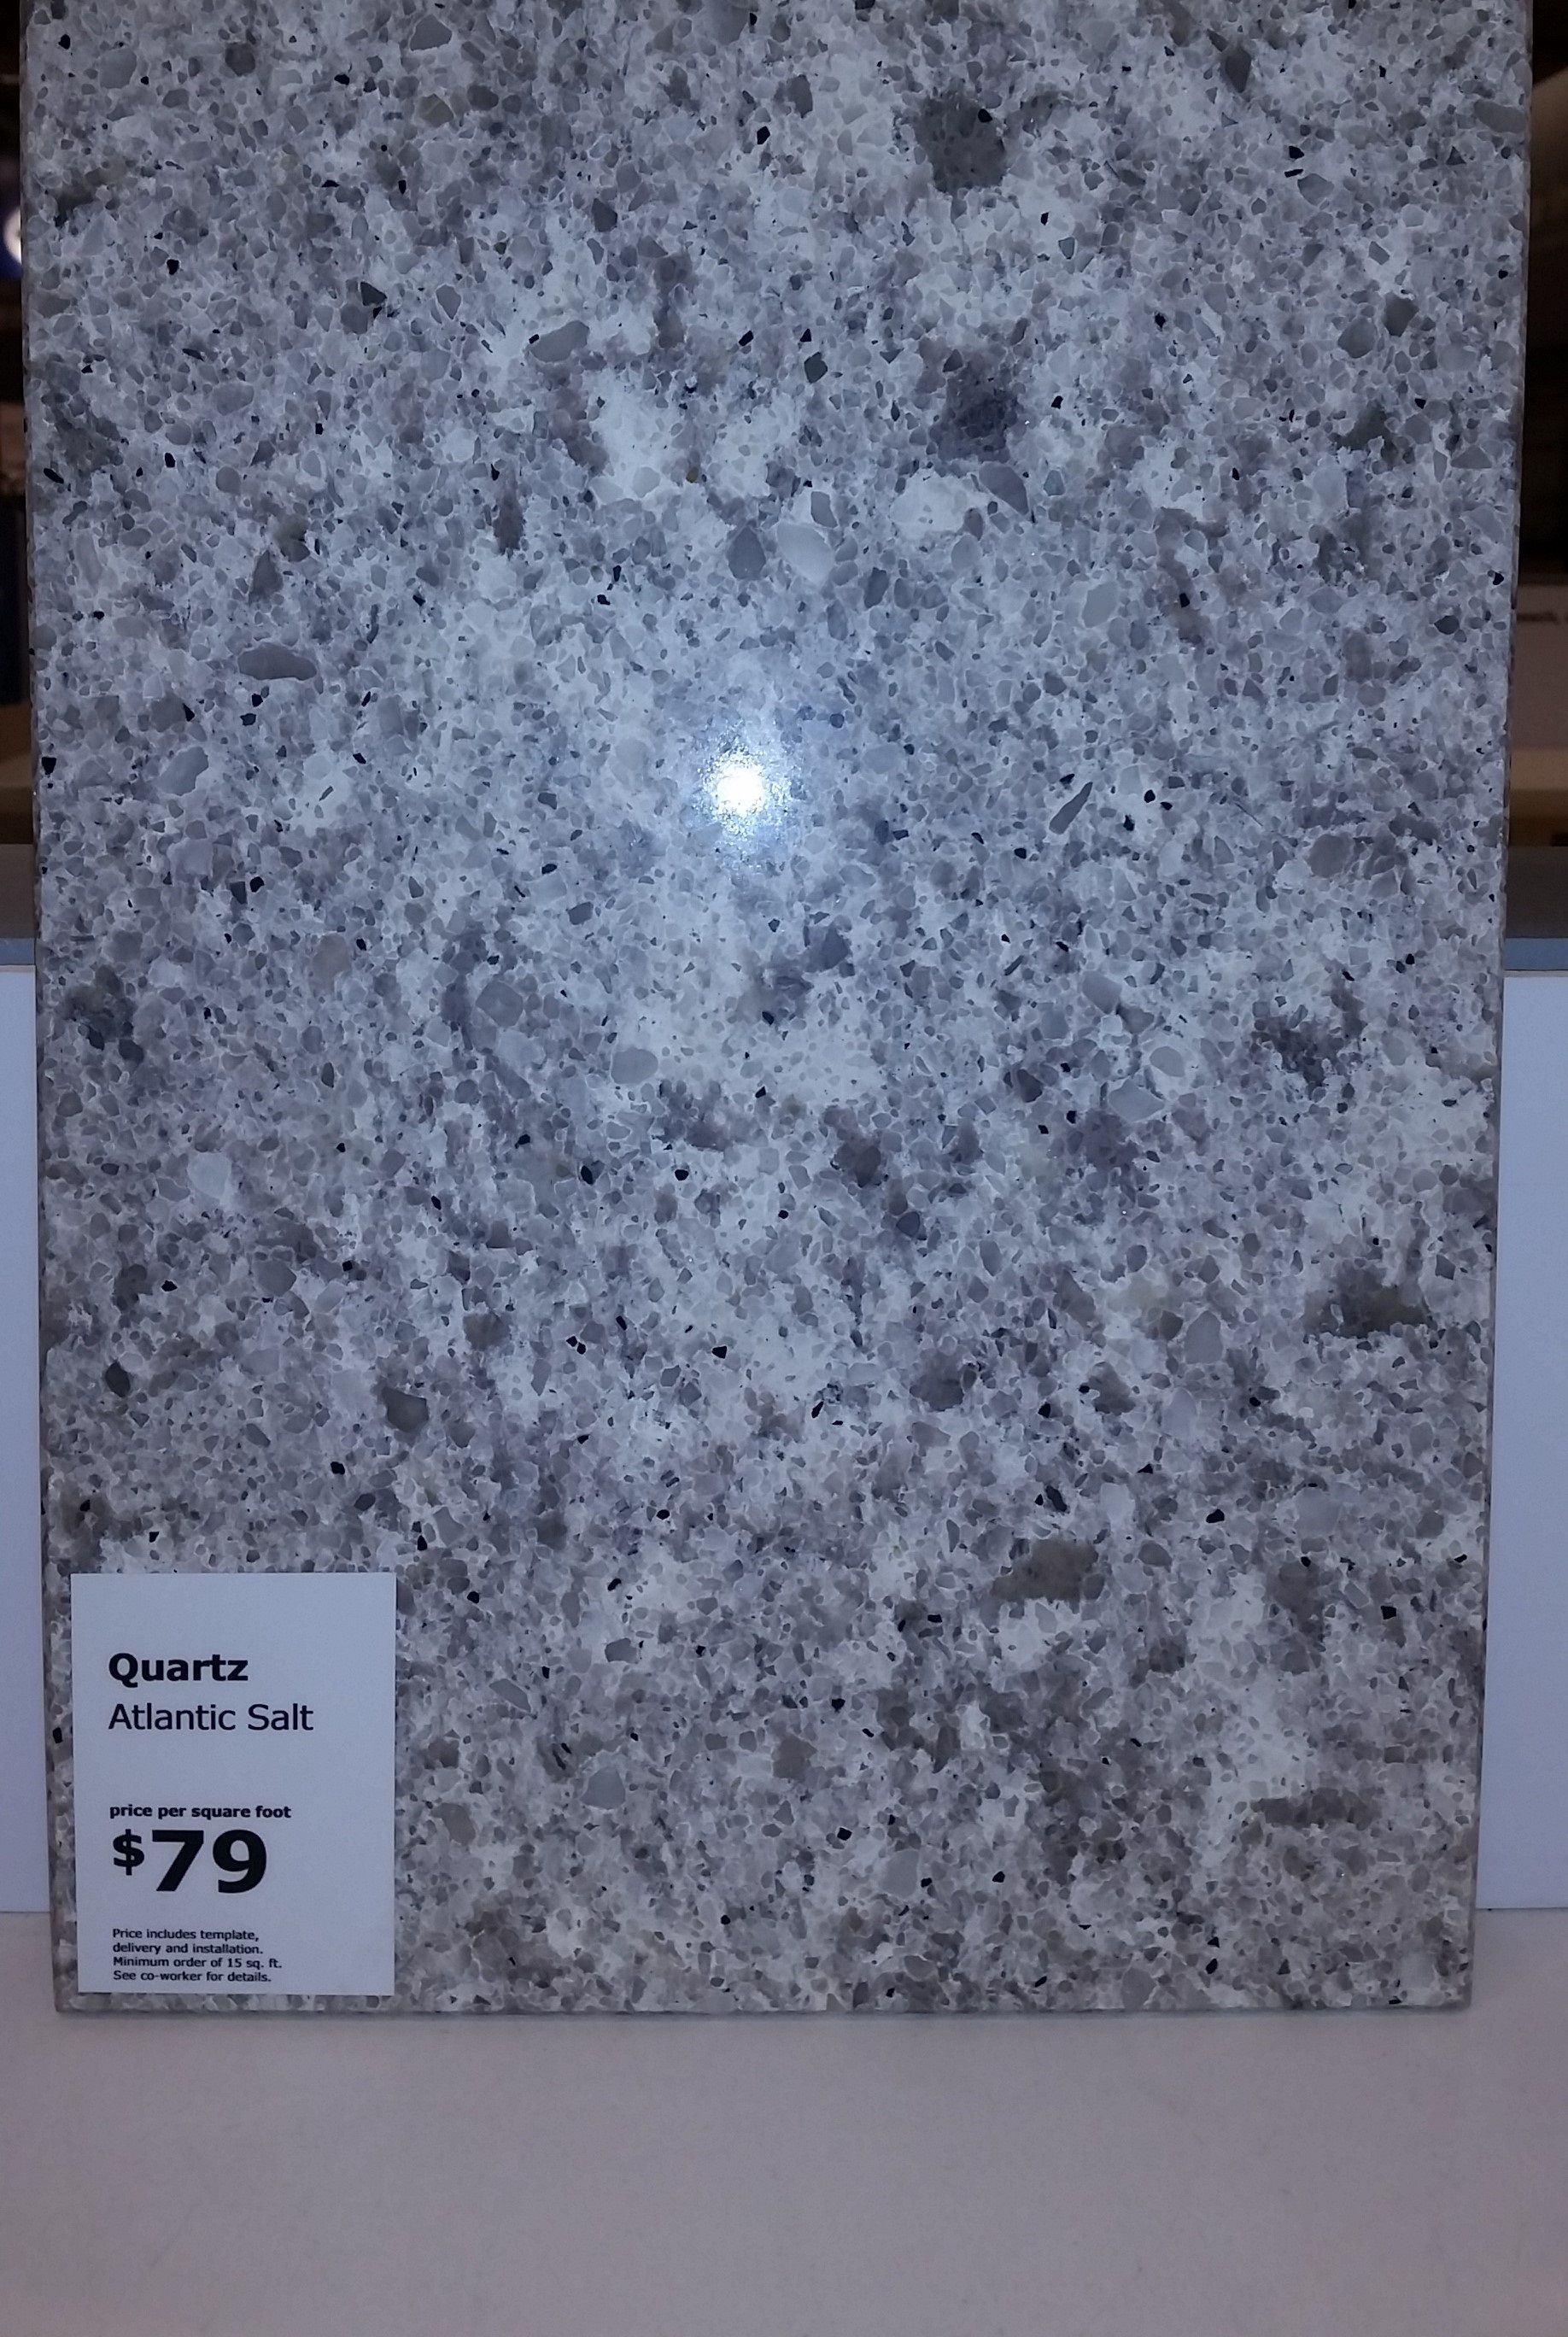 Ikea Atlantic Salt quartz countertop. Total cost $79 per square foot ...